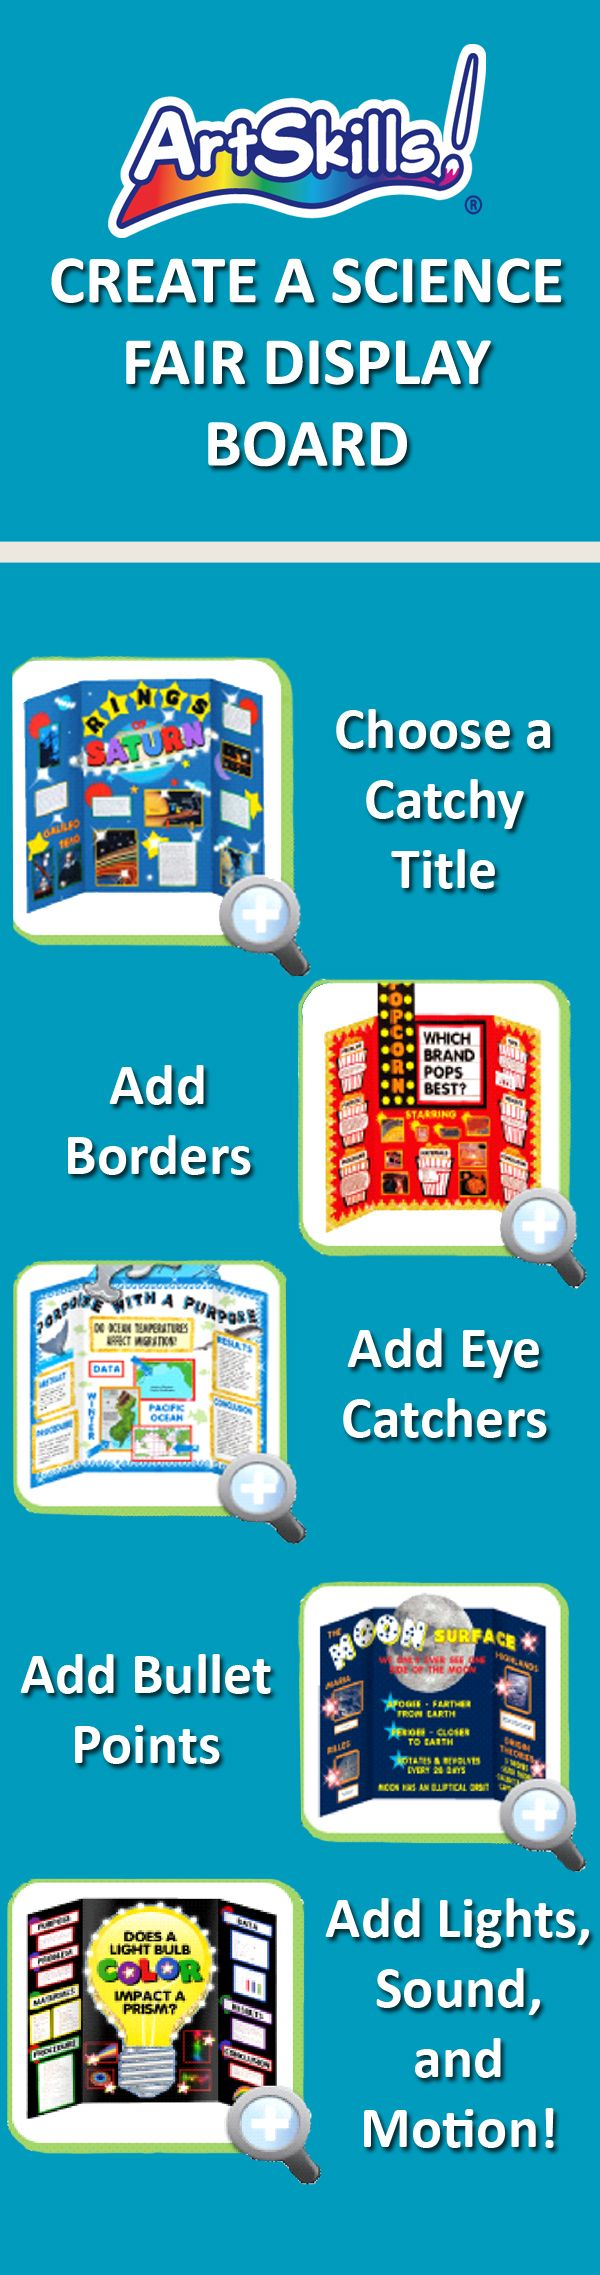 Poster design ideas for school projects - Science Fair Project Display Board How To